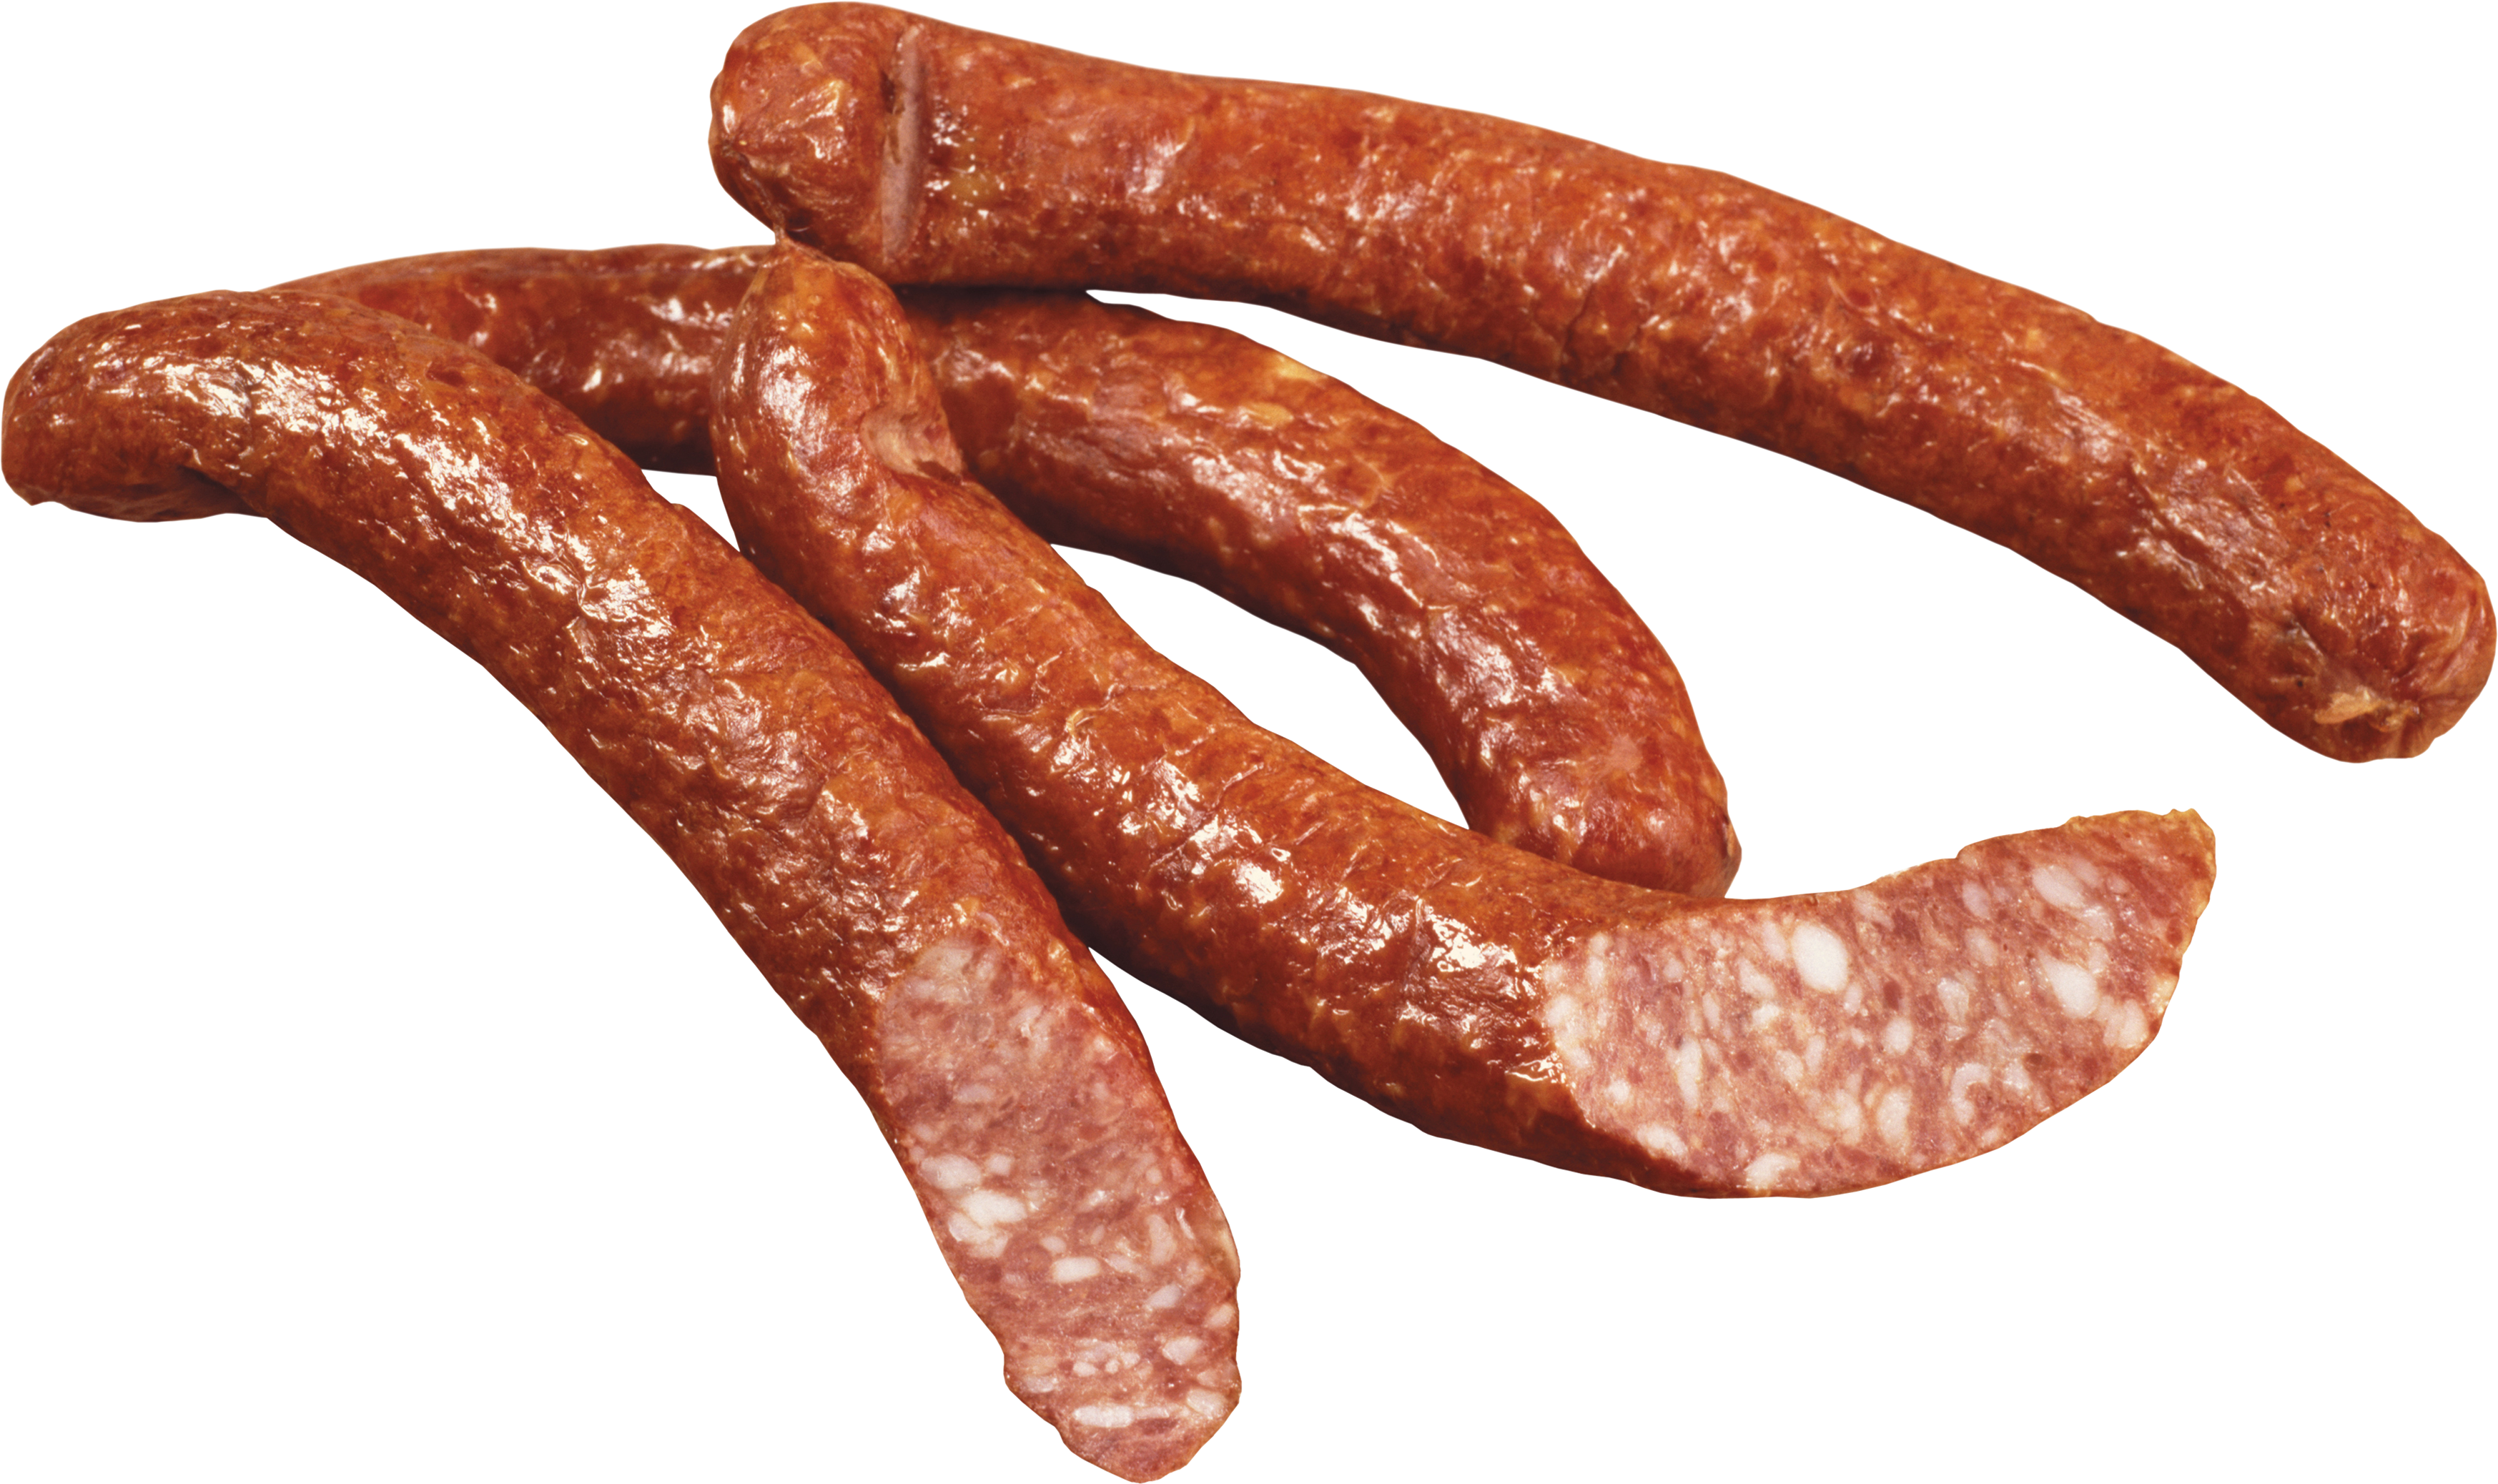 Sausage clipart transparent background. Png picture web icons